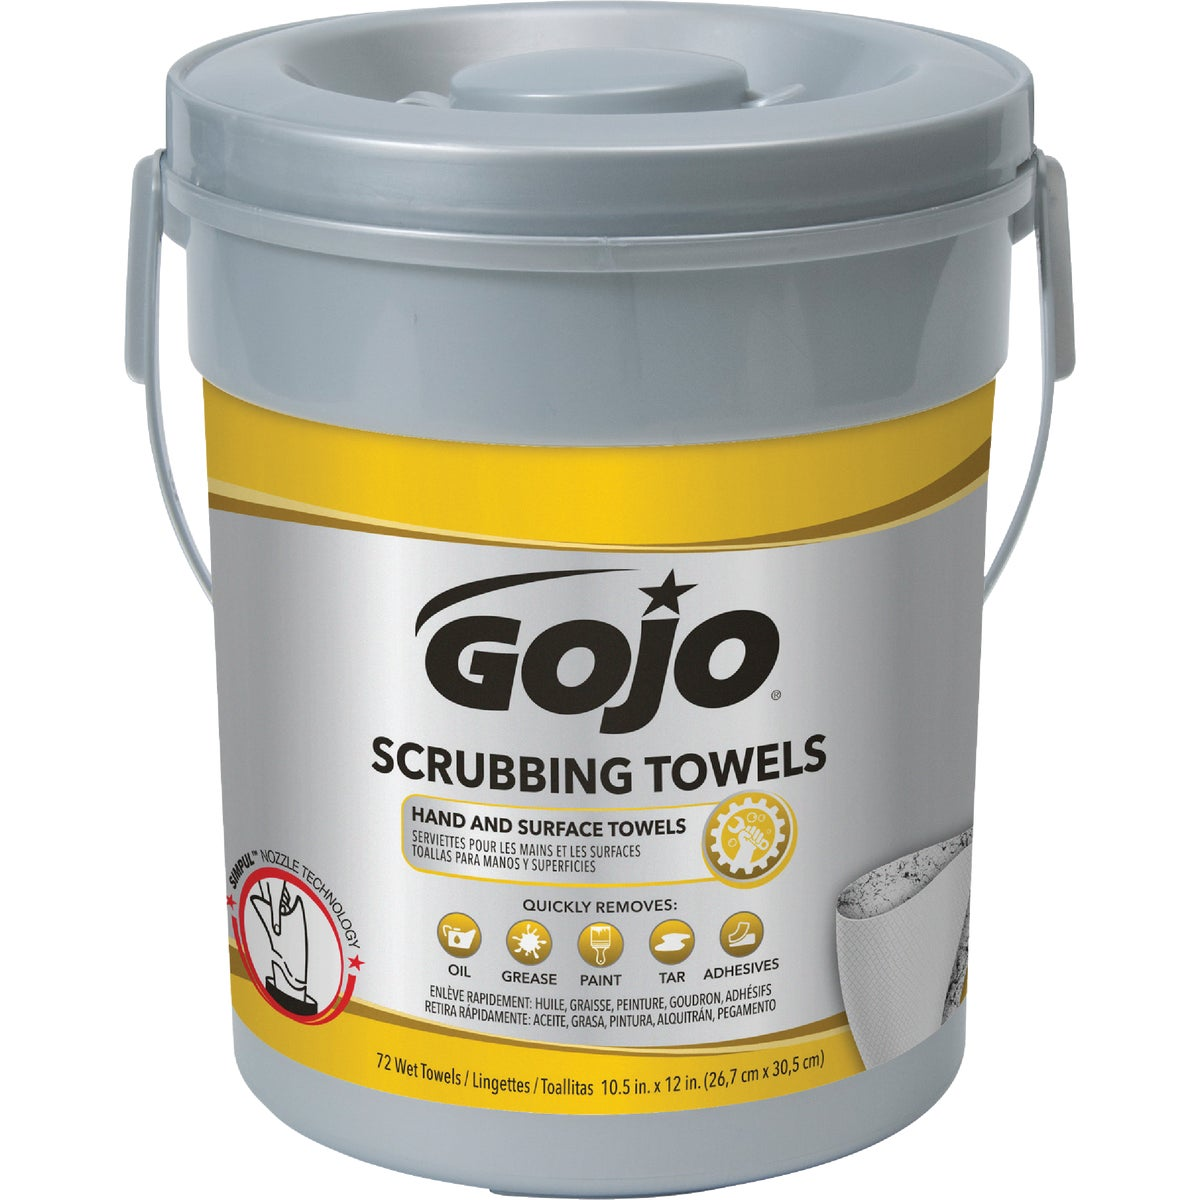 GOJO SCRUB WIPES 72 CT - 6396-06 by Bunzl USA